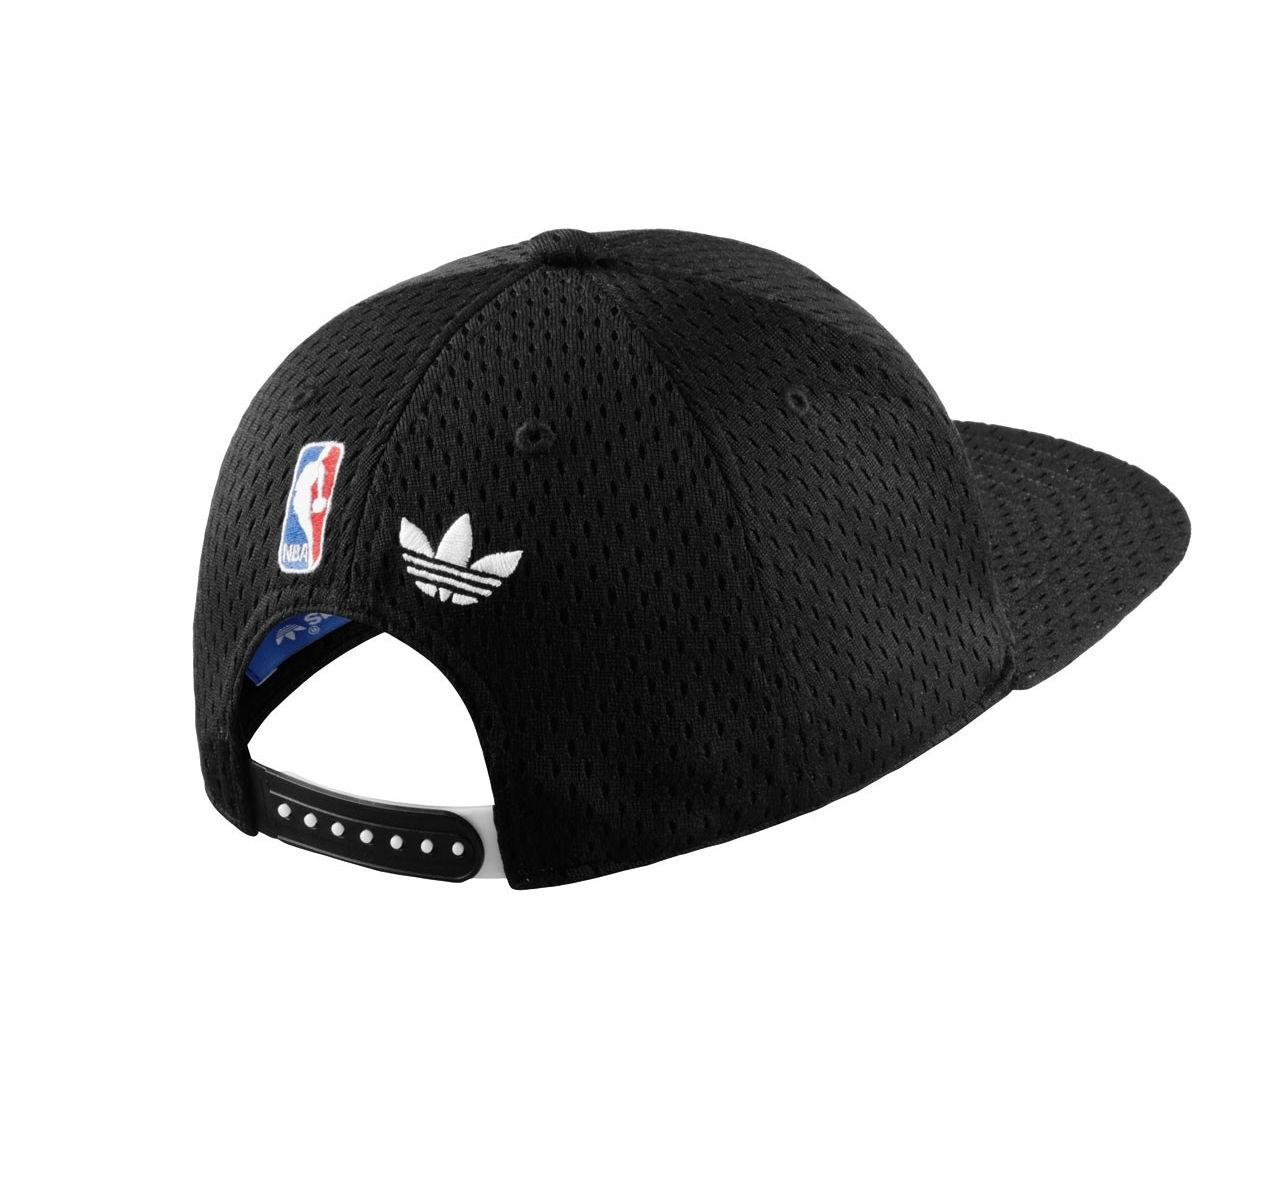 Adidas Originals NBA Gorra Mesh Brooklyn Nets (negro blanco) b9a54b27ff8